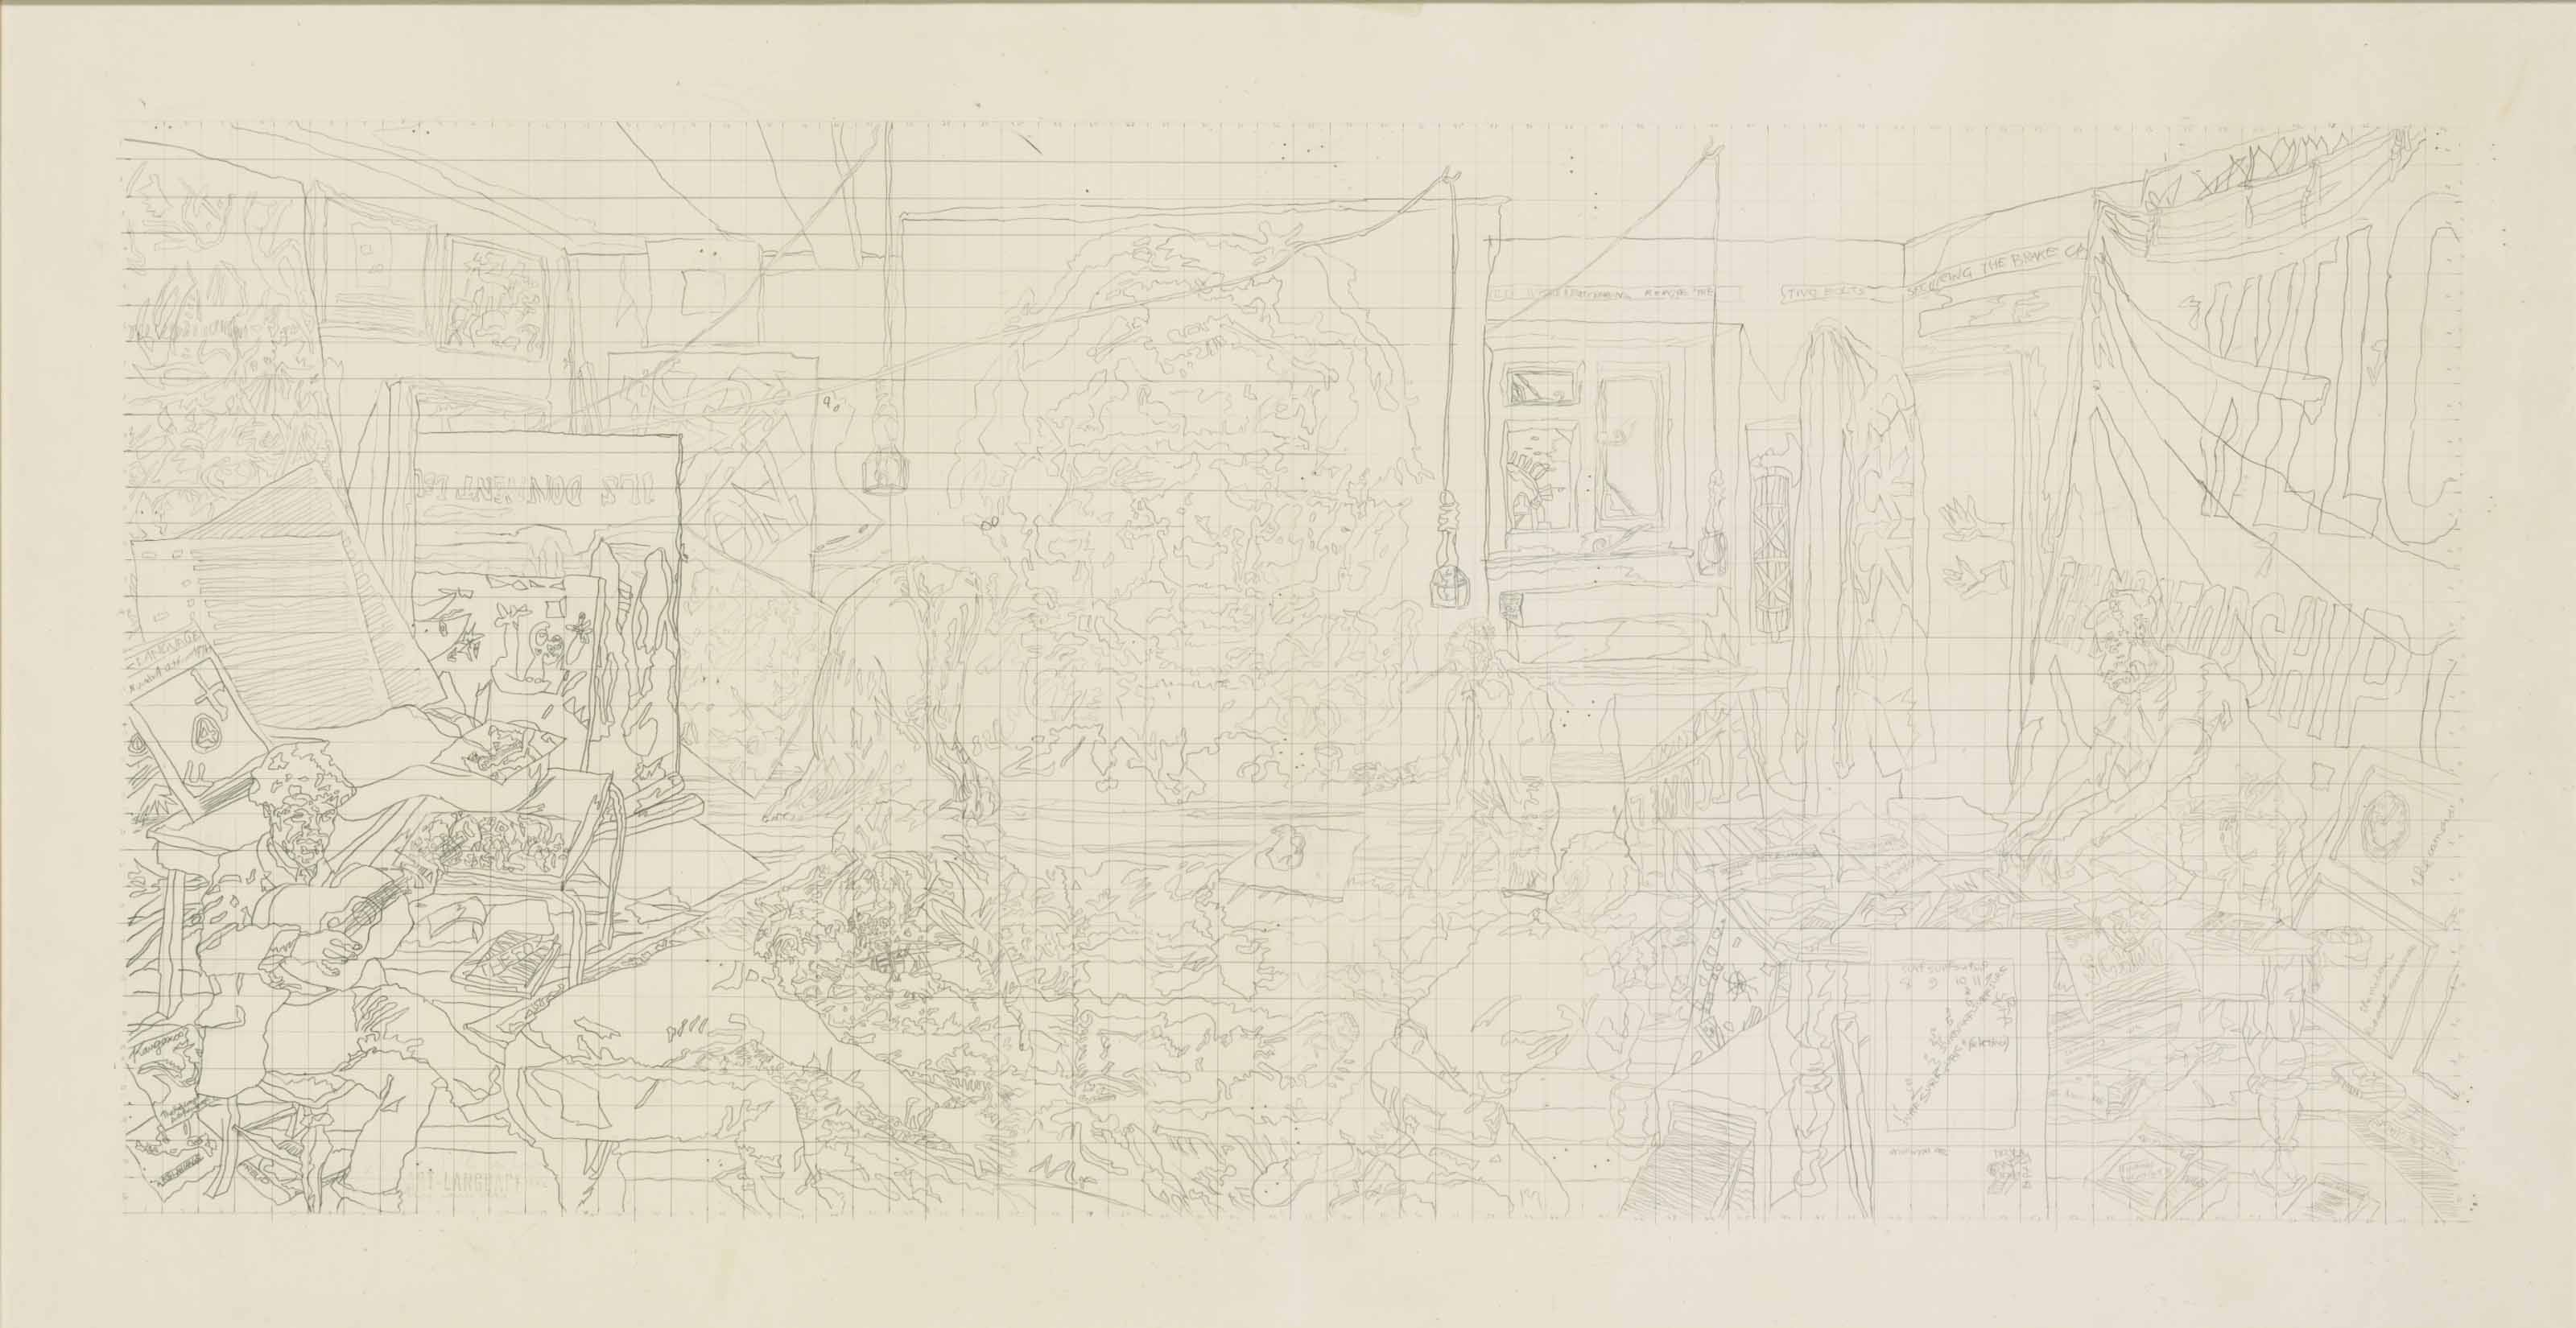 Index: The Studio at 3 Wesley Place painted by Mouth (I) Drawing (ii)